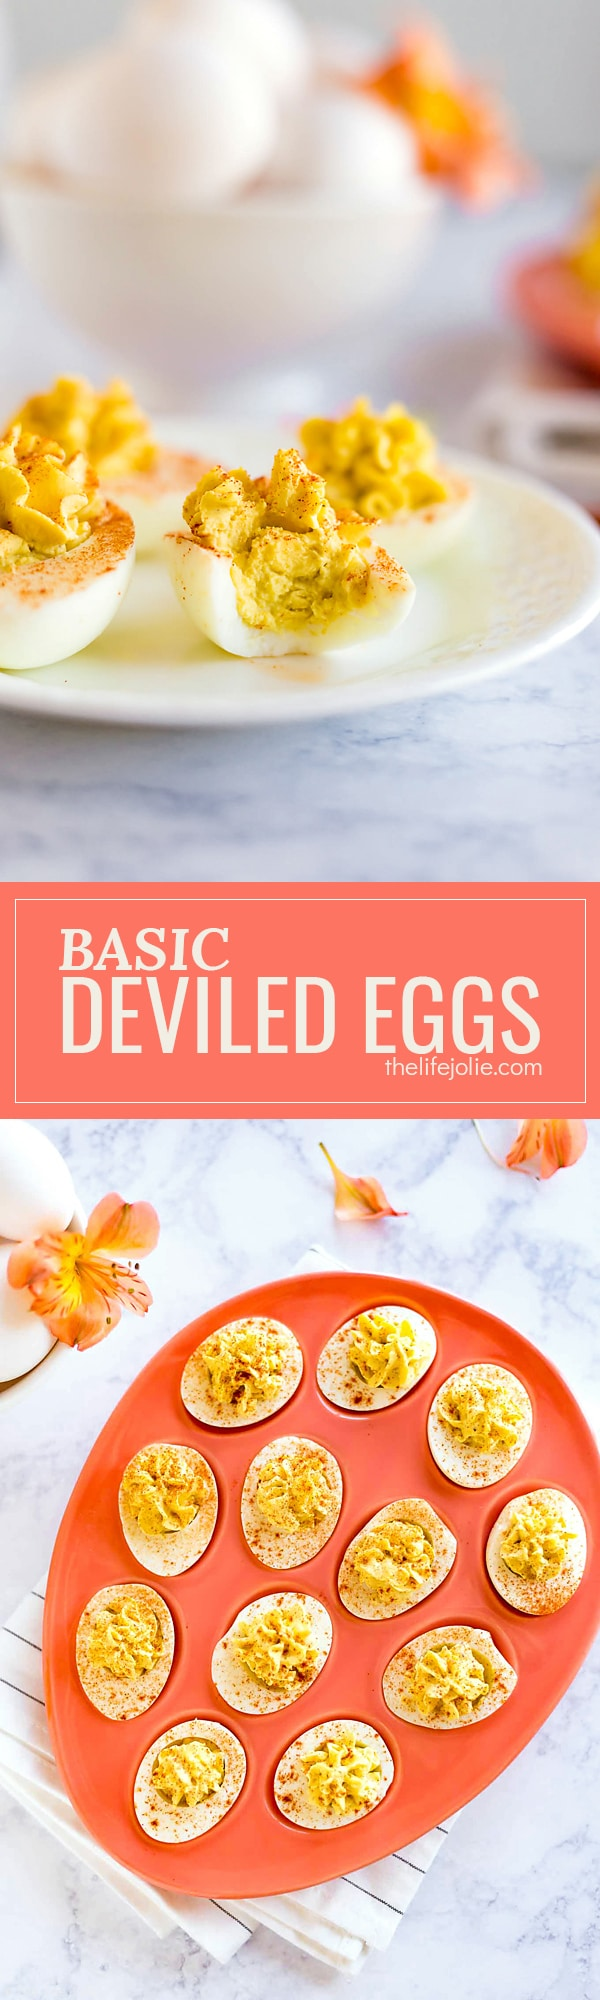 Here's an easy tutorial for how to make Basic Deviled Eggs. This recipe is the best simple method to make this classic, delicious appetizer. These are a great way to use up extra Easter eggs and are perfect to bring to a picnic or get-together!